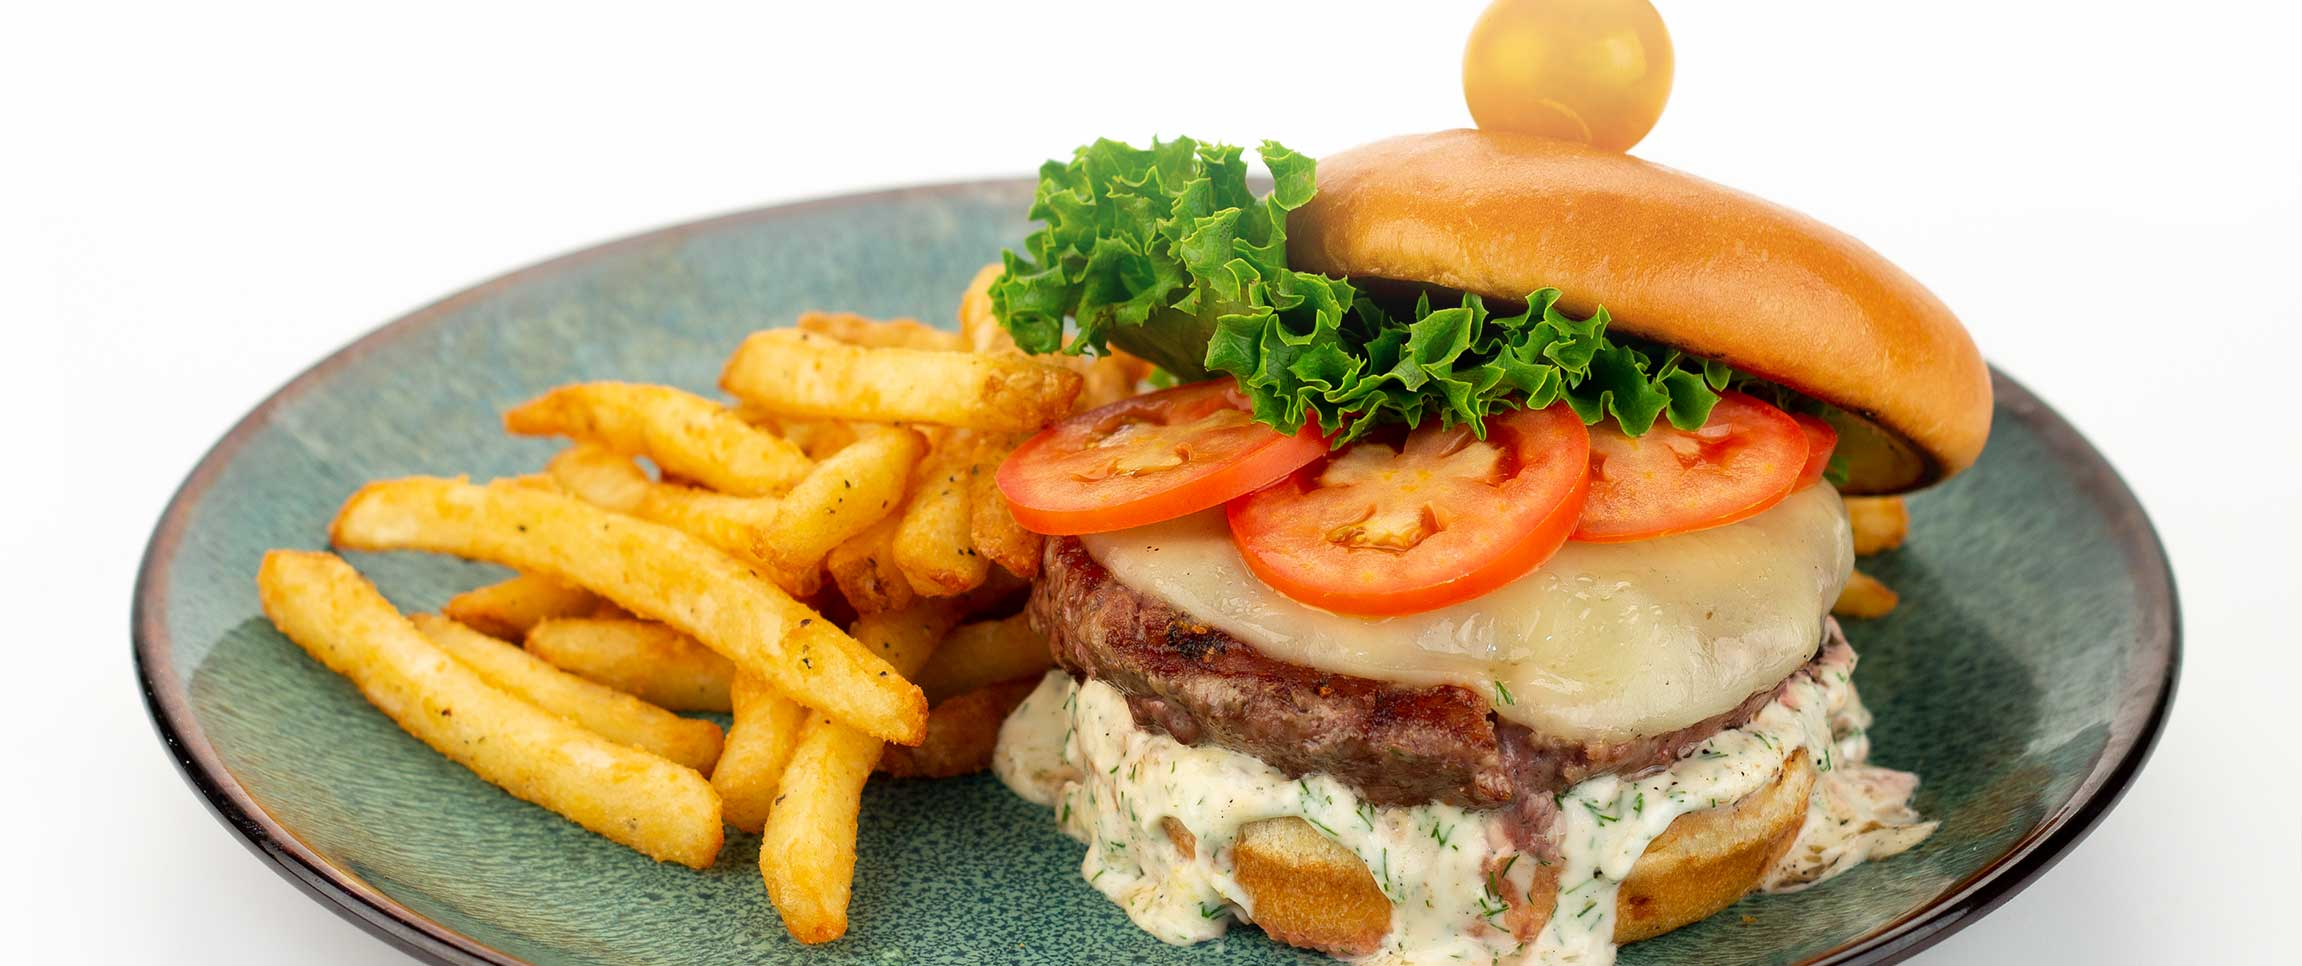 Lamb Burger with French Fries